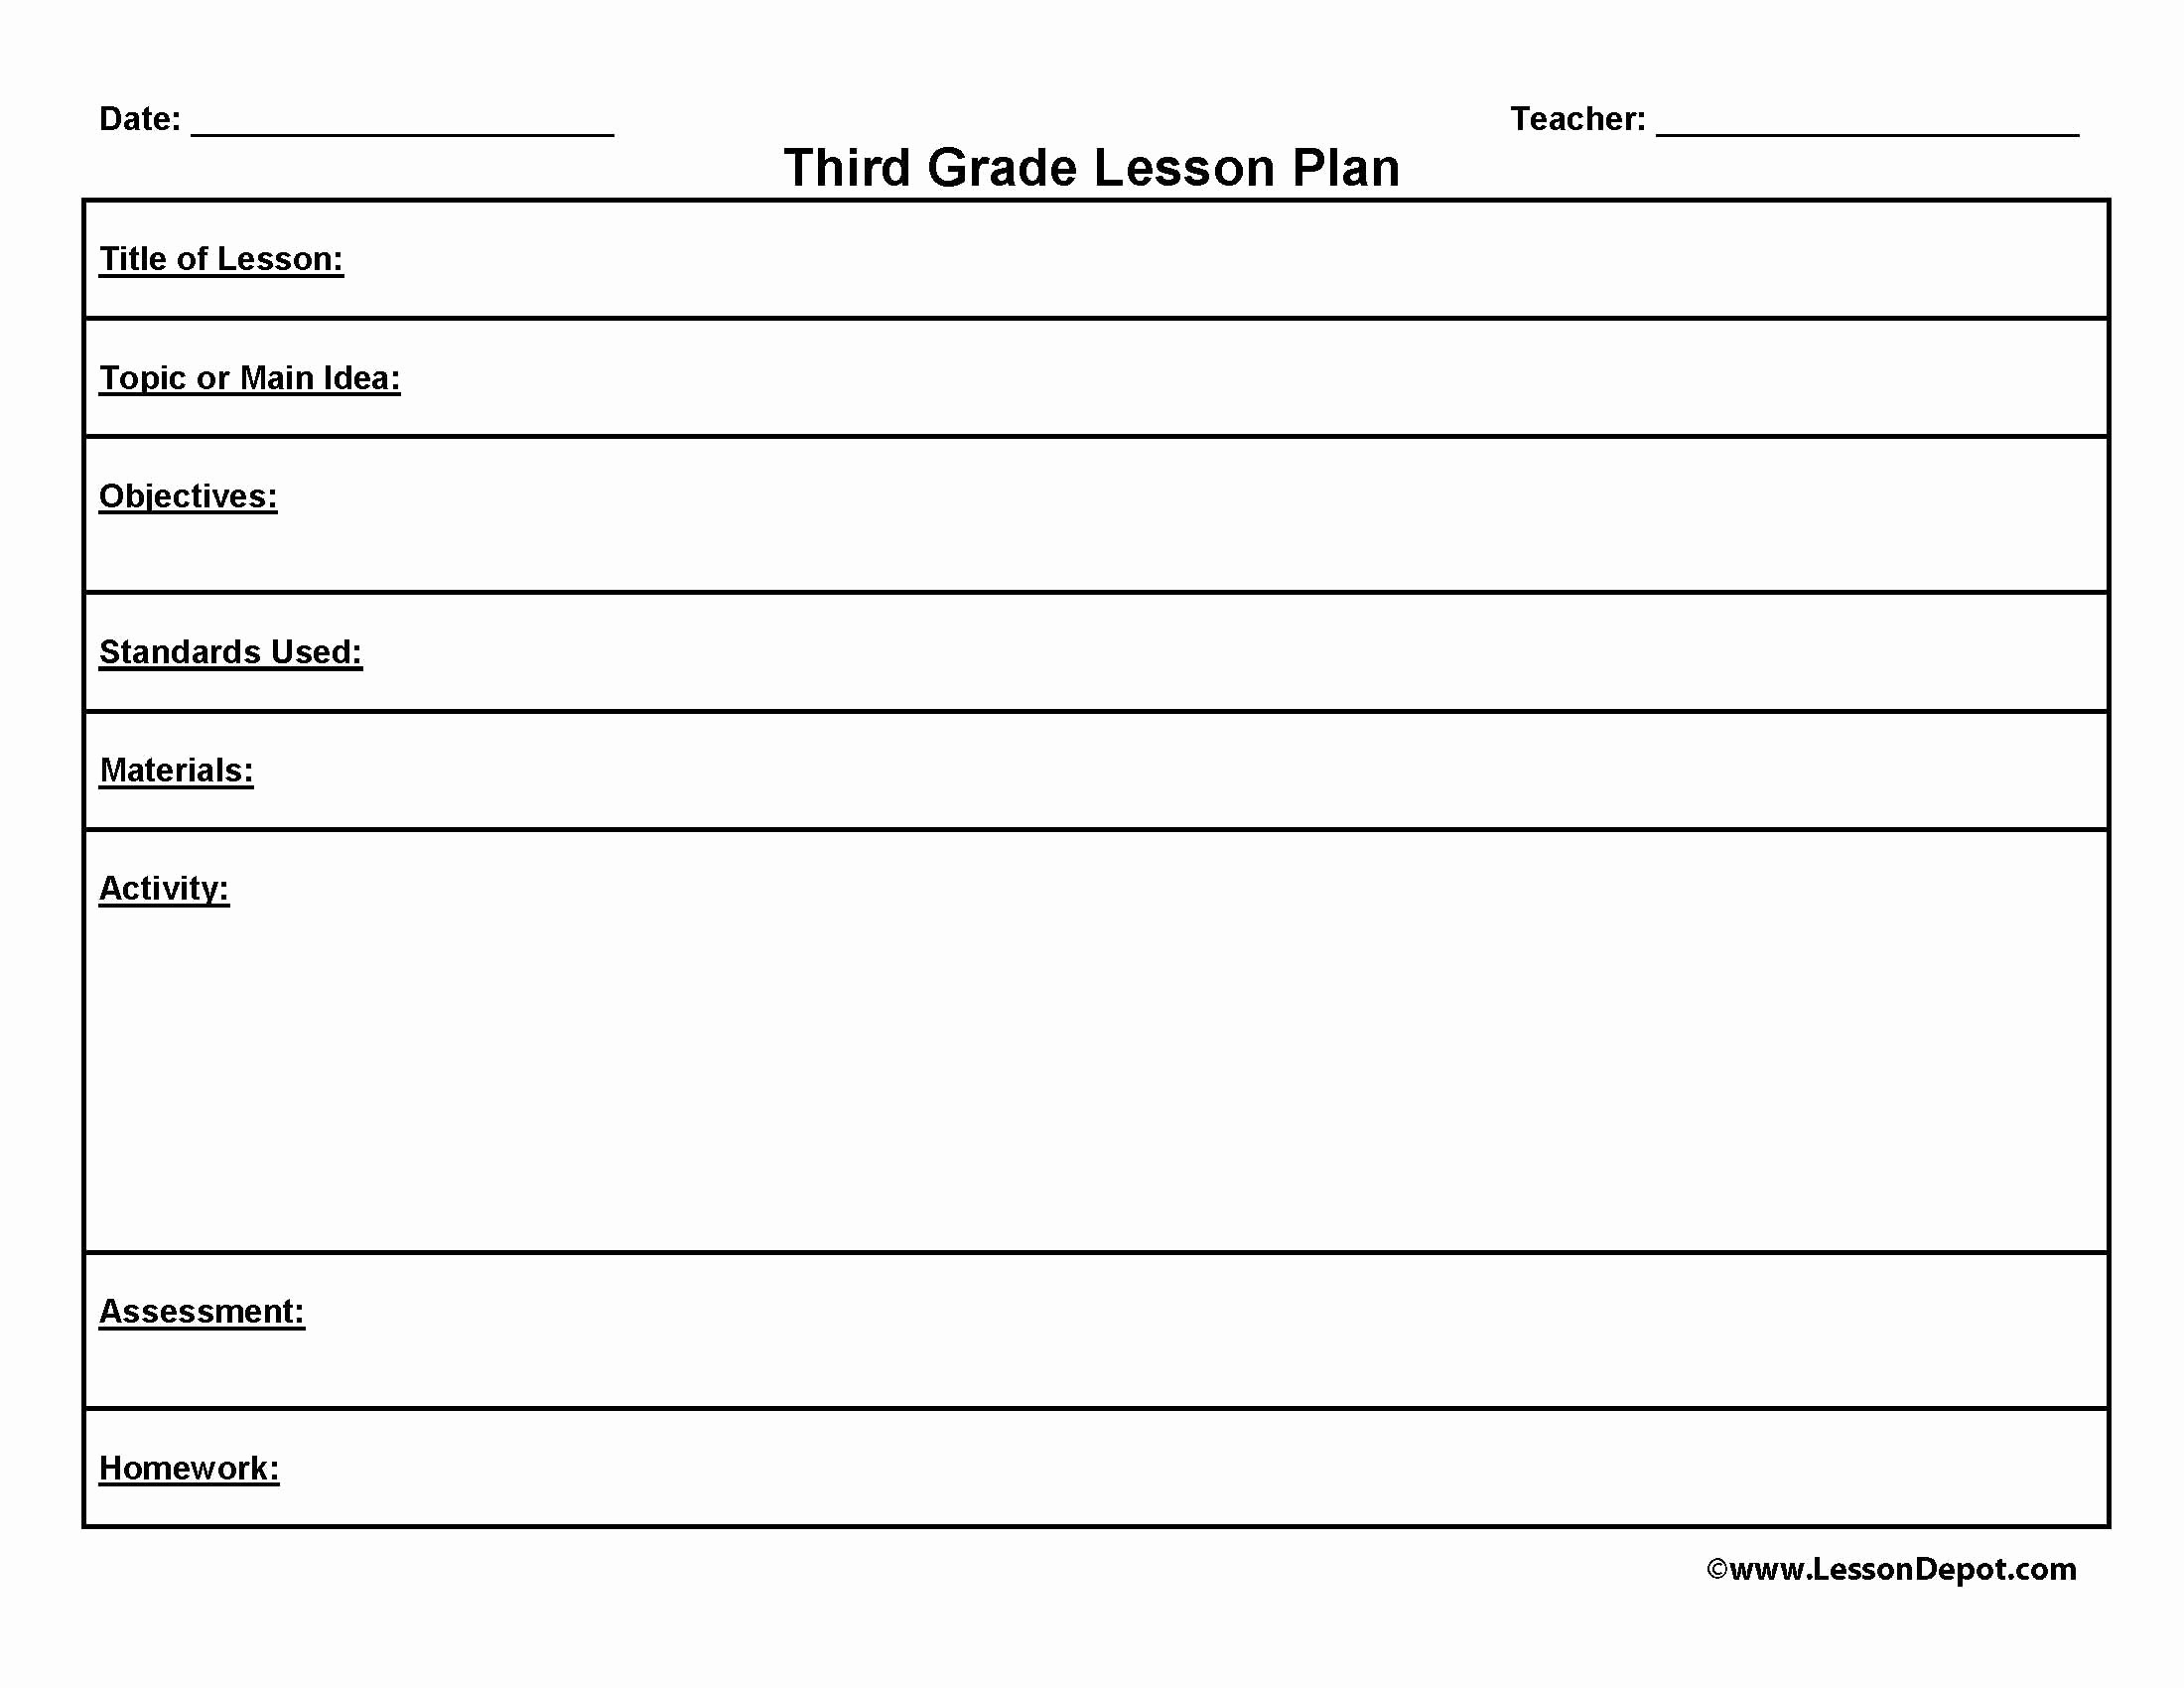 Basic Lesson Plan Template Word Awesome Basic Lesson Plan Template Word Filename